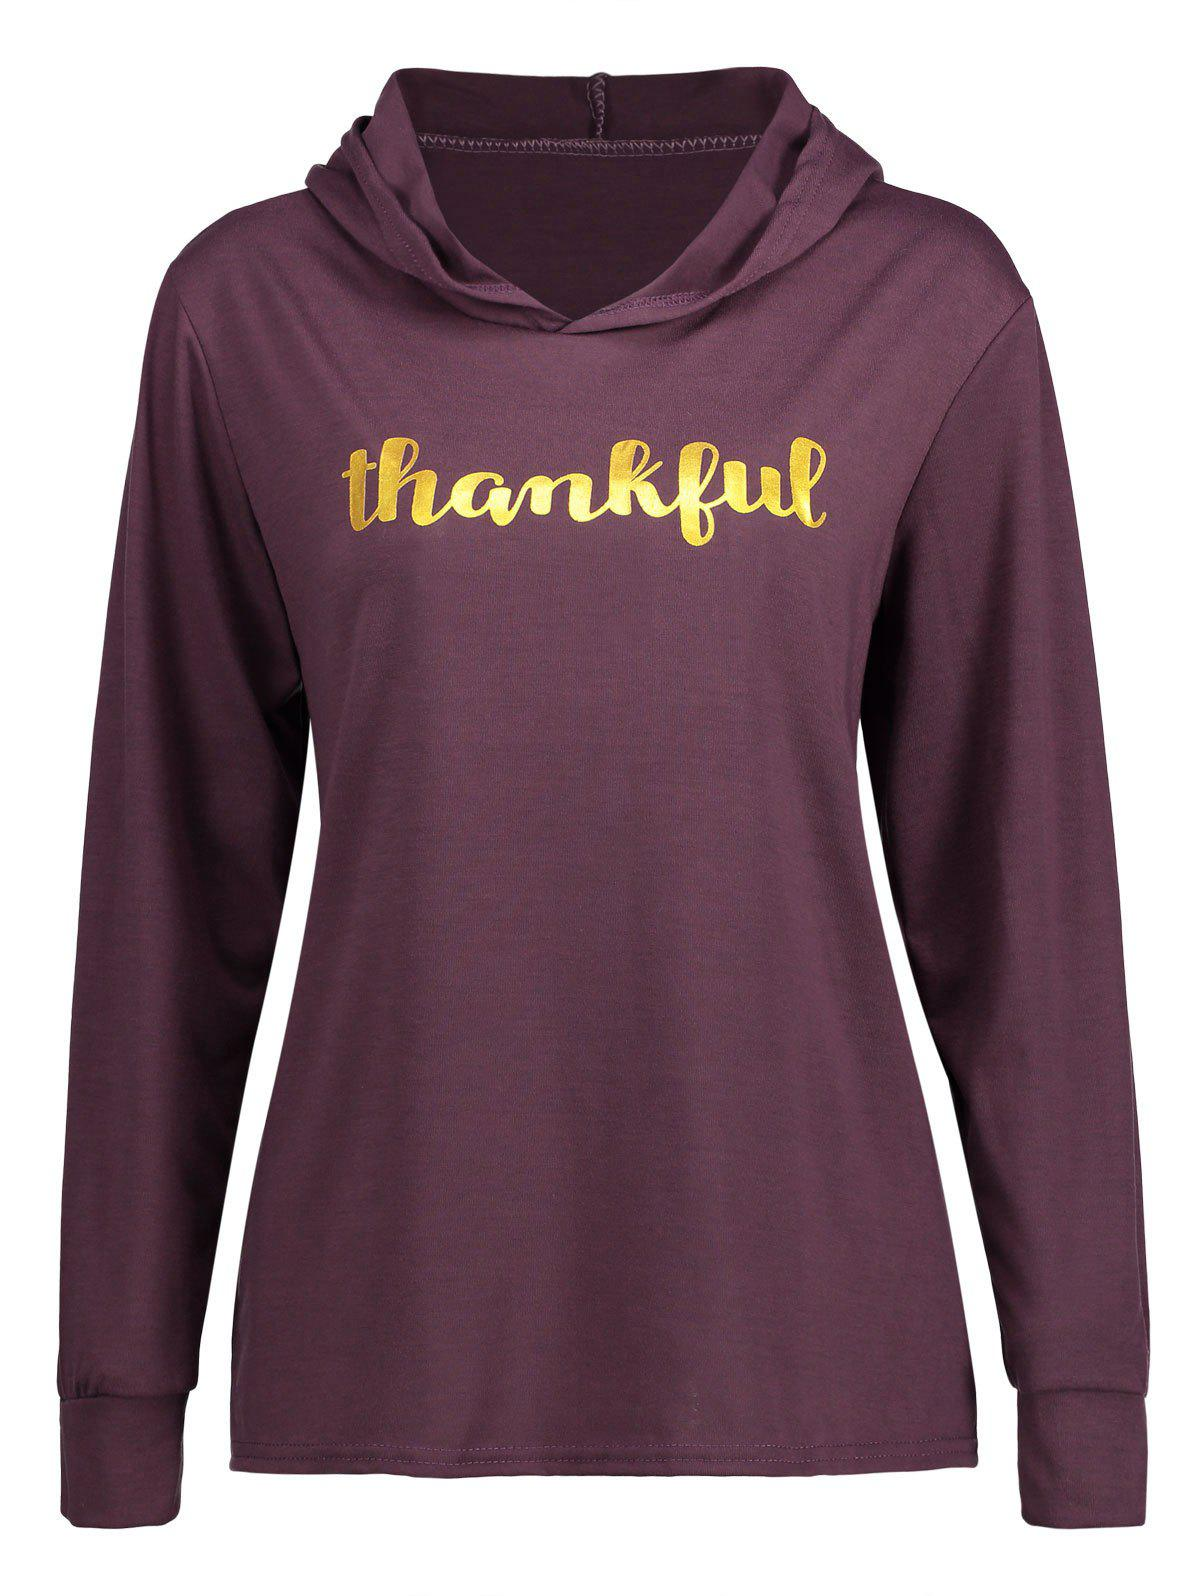 Thankful Thanksgiving HoodieWOMEN<br><br>Size: L; Color: PURPLE; Material: Polyester,Spandex; Shirt Length: Regular; Sleeve Length: Full; Style: Fashion; Pattern Style: Letter; Season: Fall,Spring; Weight: 0.2700kg; Package Contents: 1 x Hoodie;